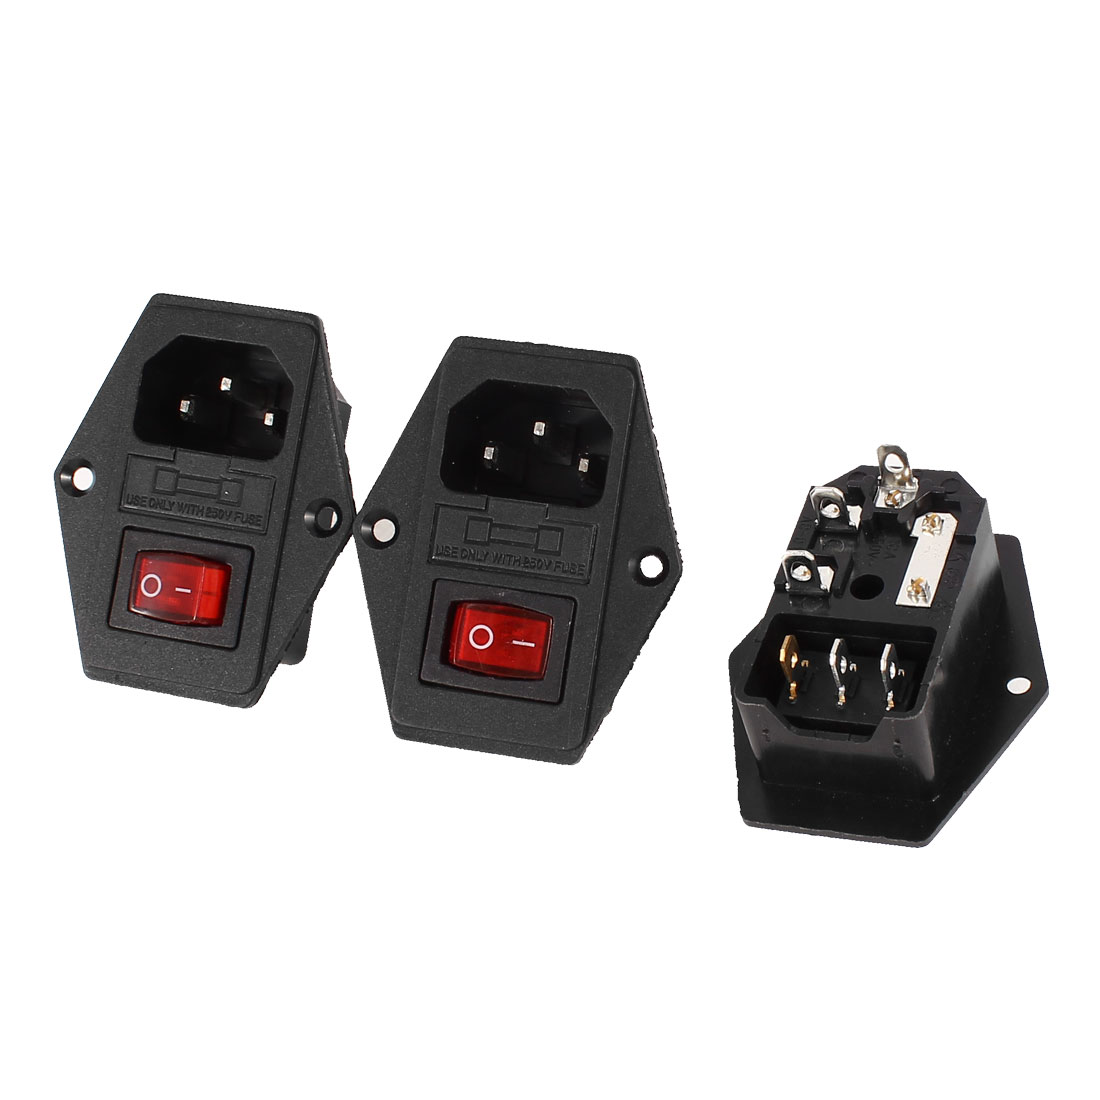 3 Pcs 3Pin SPST Red Light Rocker Switch IEC320 C14 Inlet Power Socket w Fuse AC 250V 5A